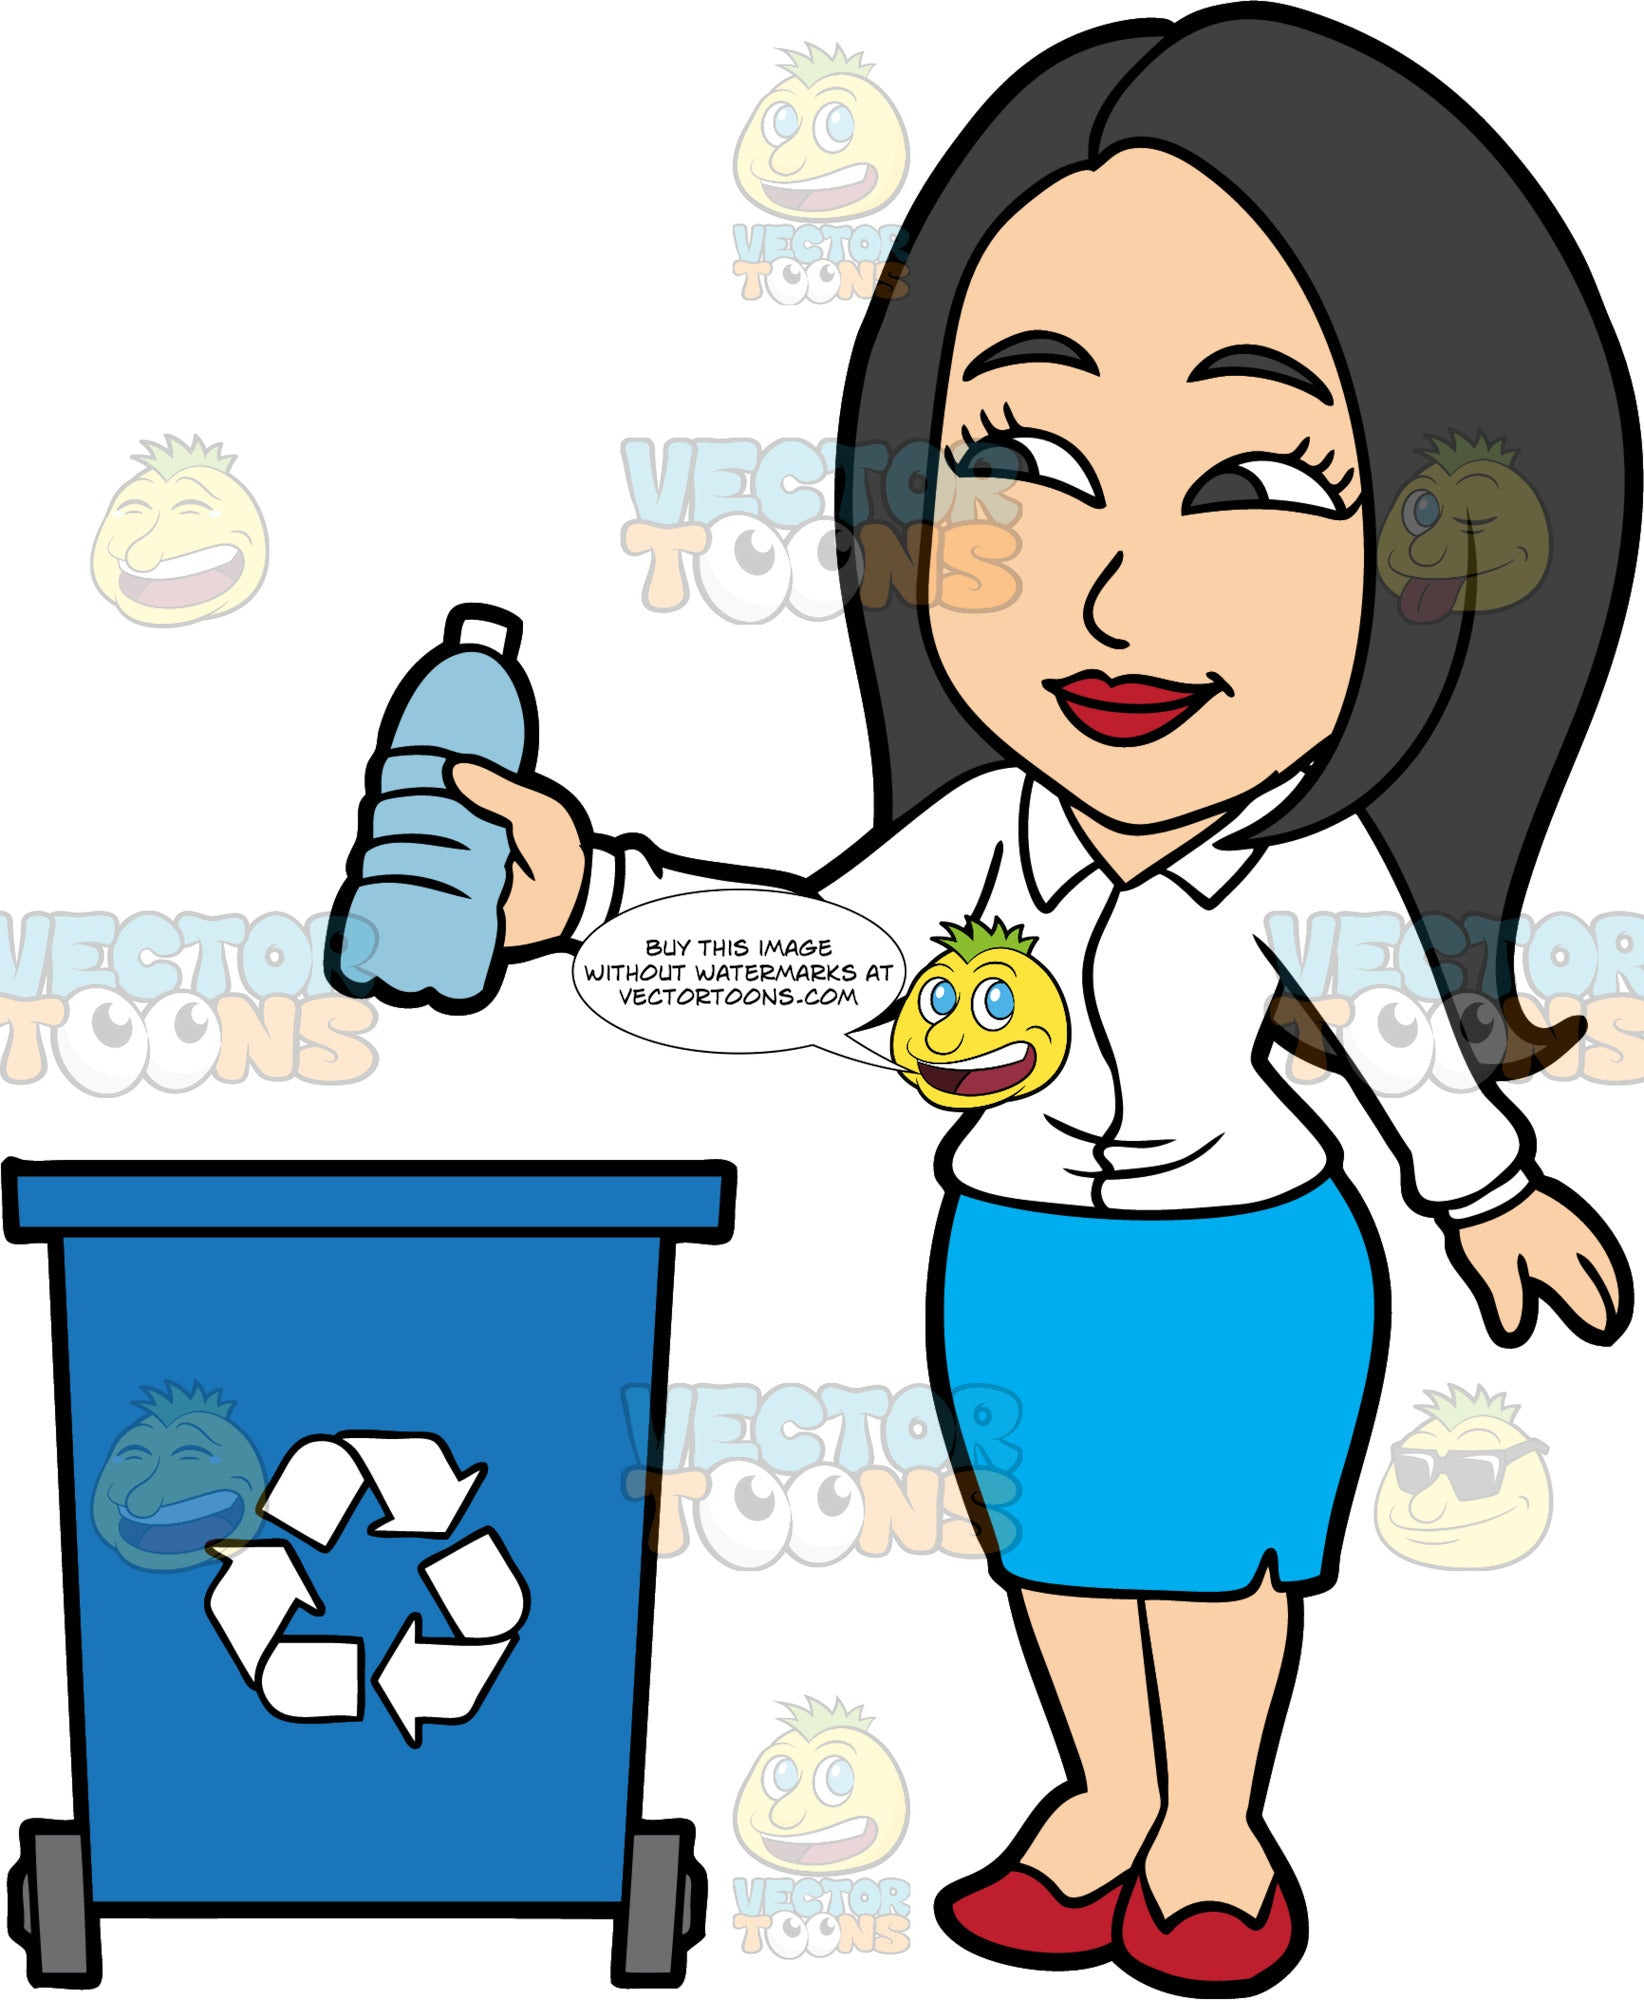 Connie Throwing A Plastic Bottle Into A Recycling Bin. An Asian woman wearing a blue skirt, a white shirt, and red shoes, throwing a plastic water bottle into a big blue recycling bin